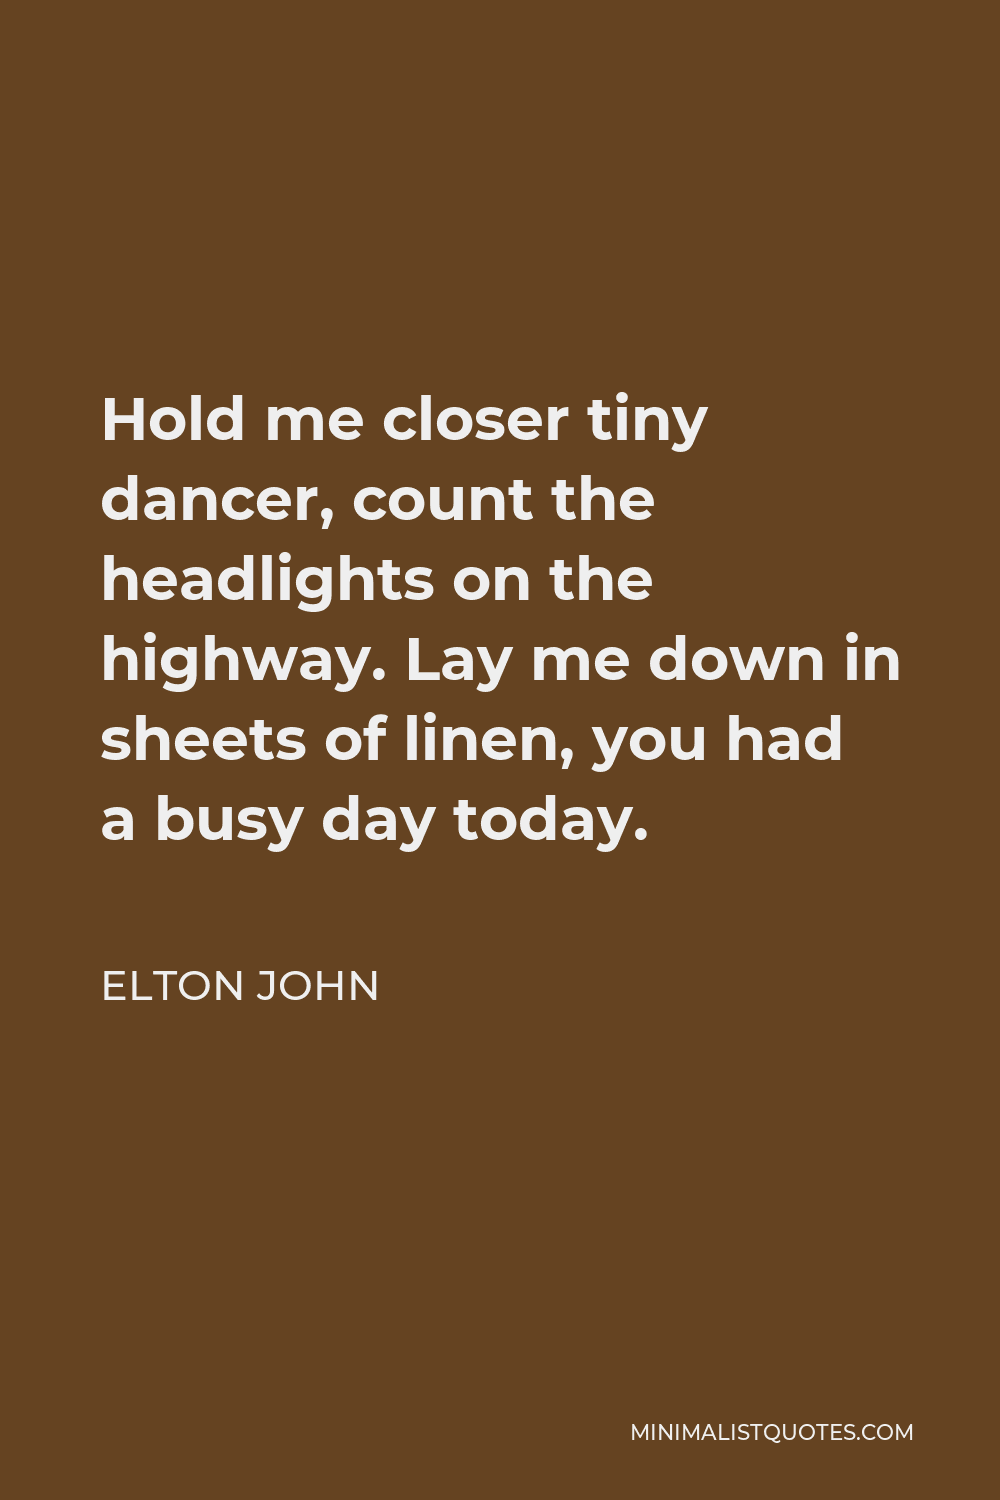 Elton John Quote - Hold me closer tiny dancer, count the headlights on the highway. Lay me down in sheets of linen, you had a busy day today.